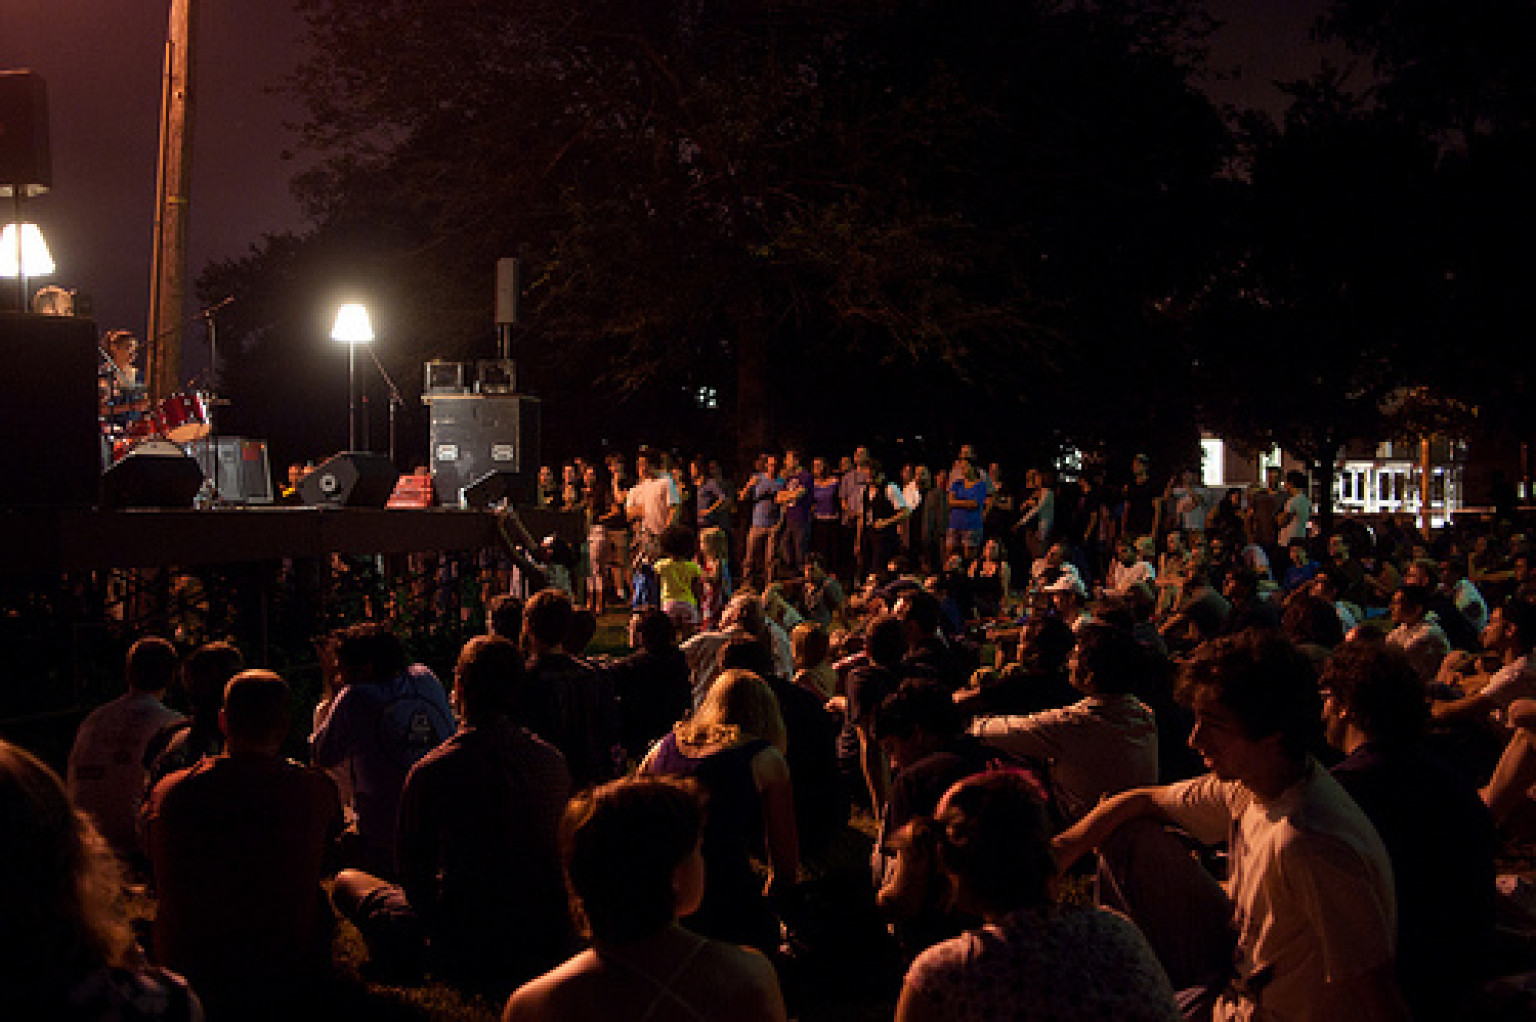 Amanda MacKaye tells all regarding the Fort Reno Concert Series threats